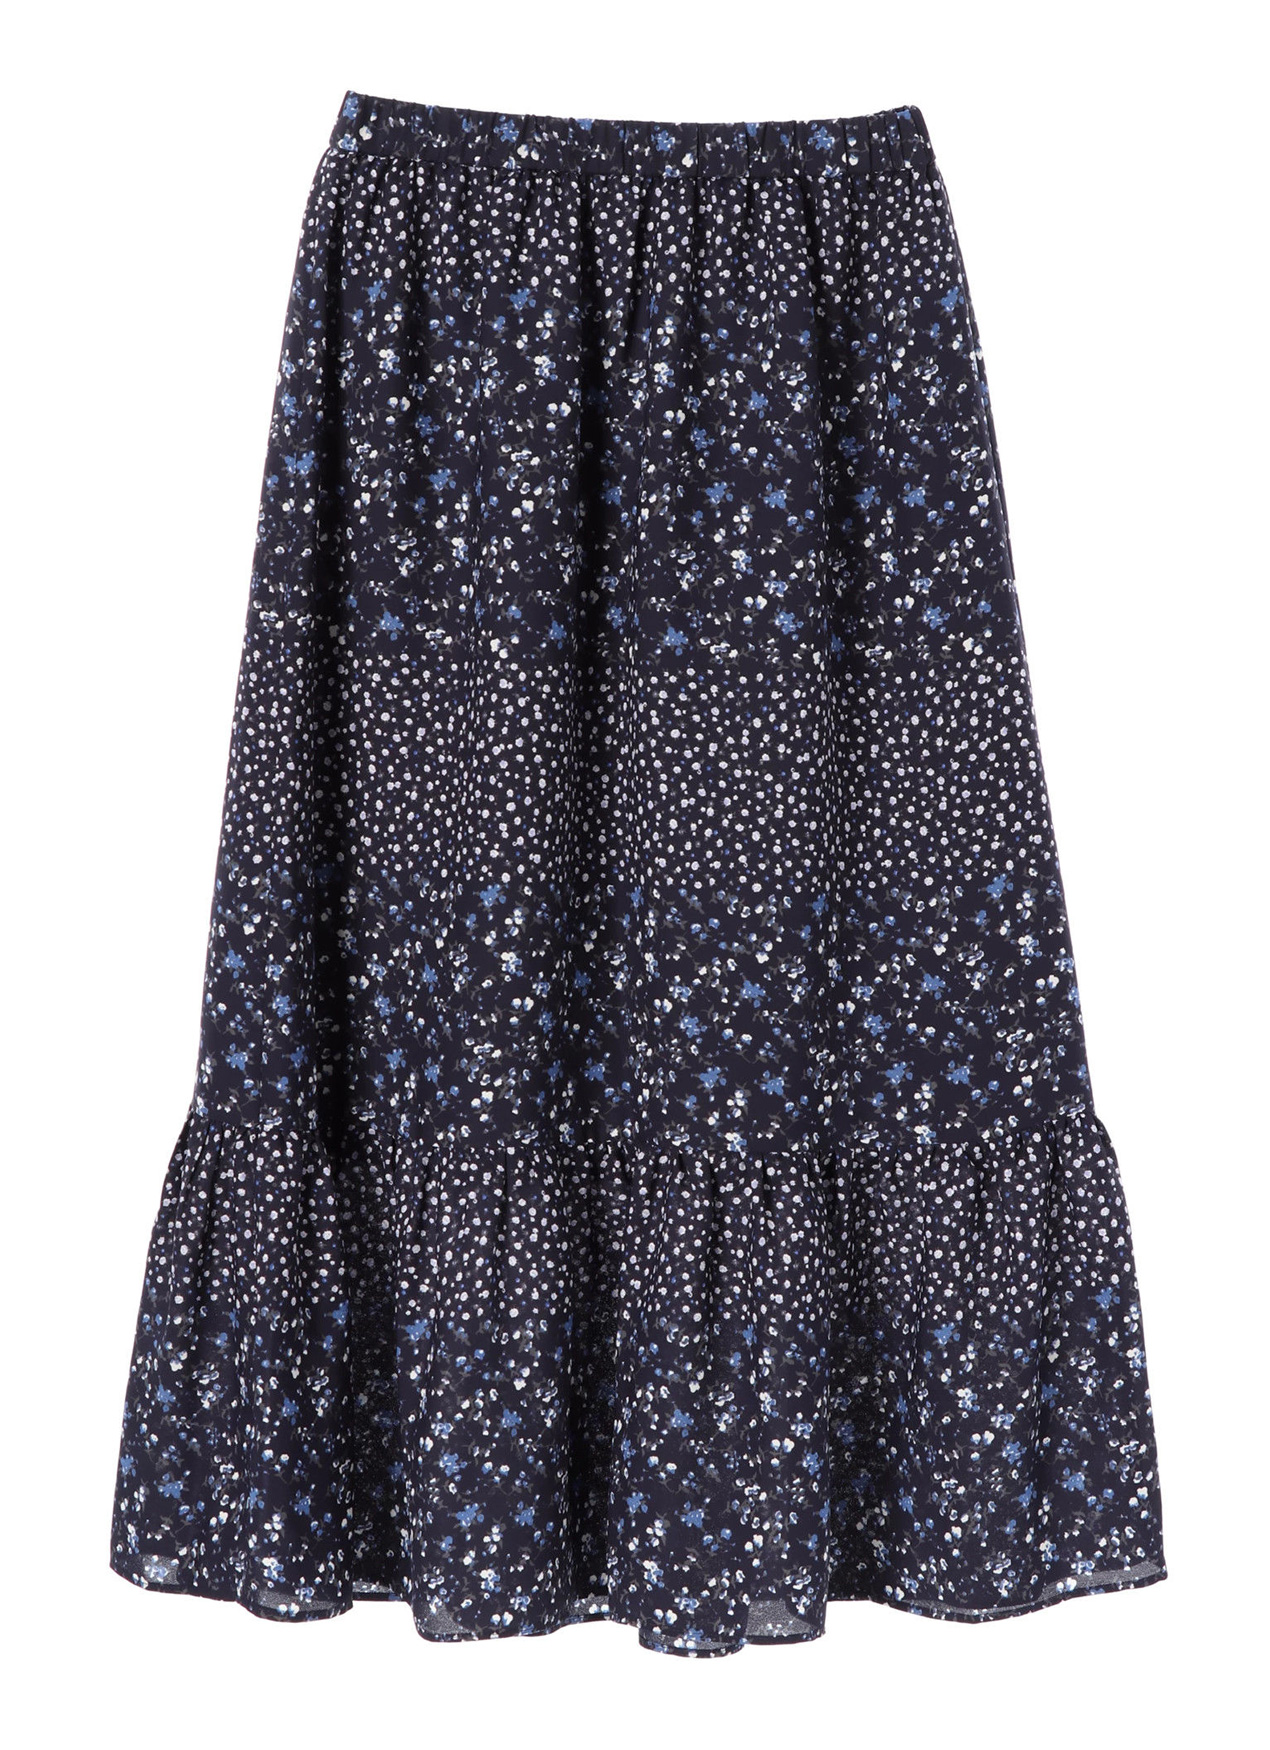 E-hyphen World Gallery Bianca Skirt - Navy